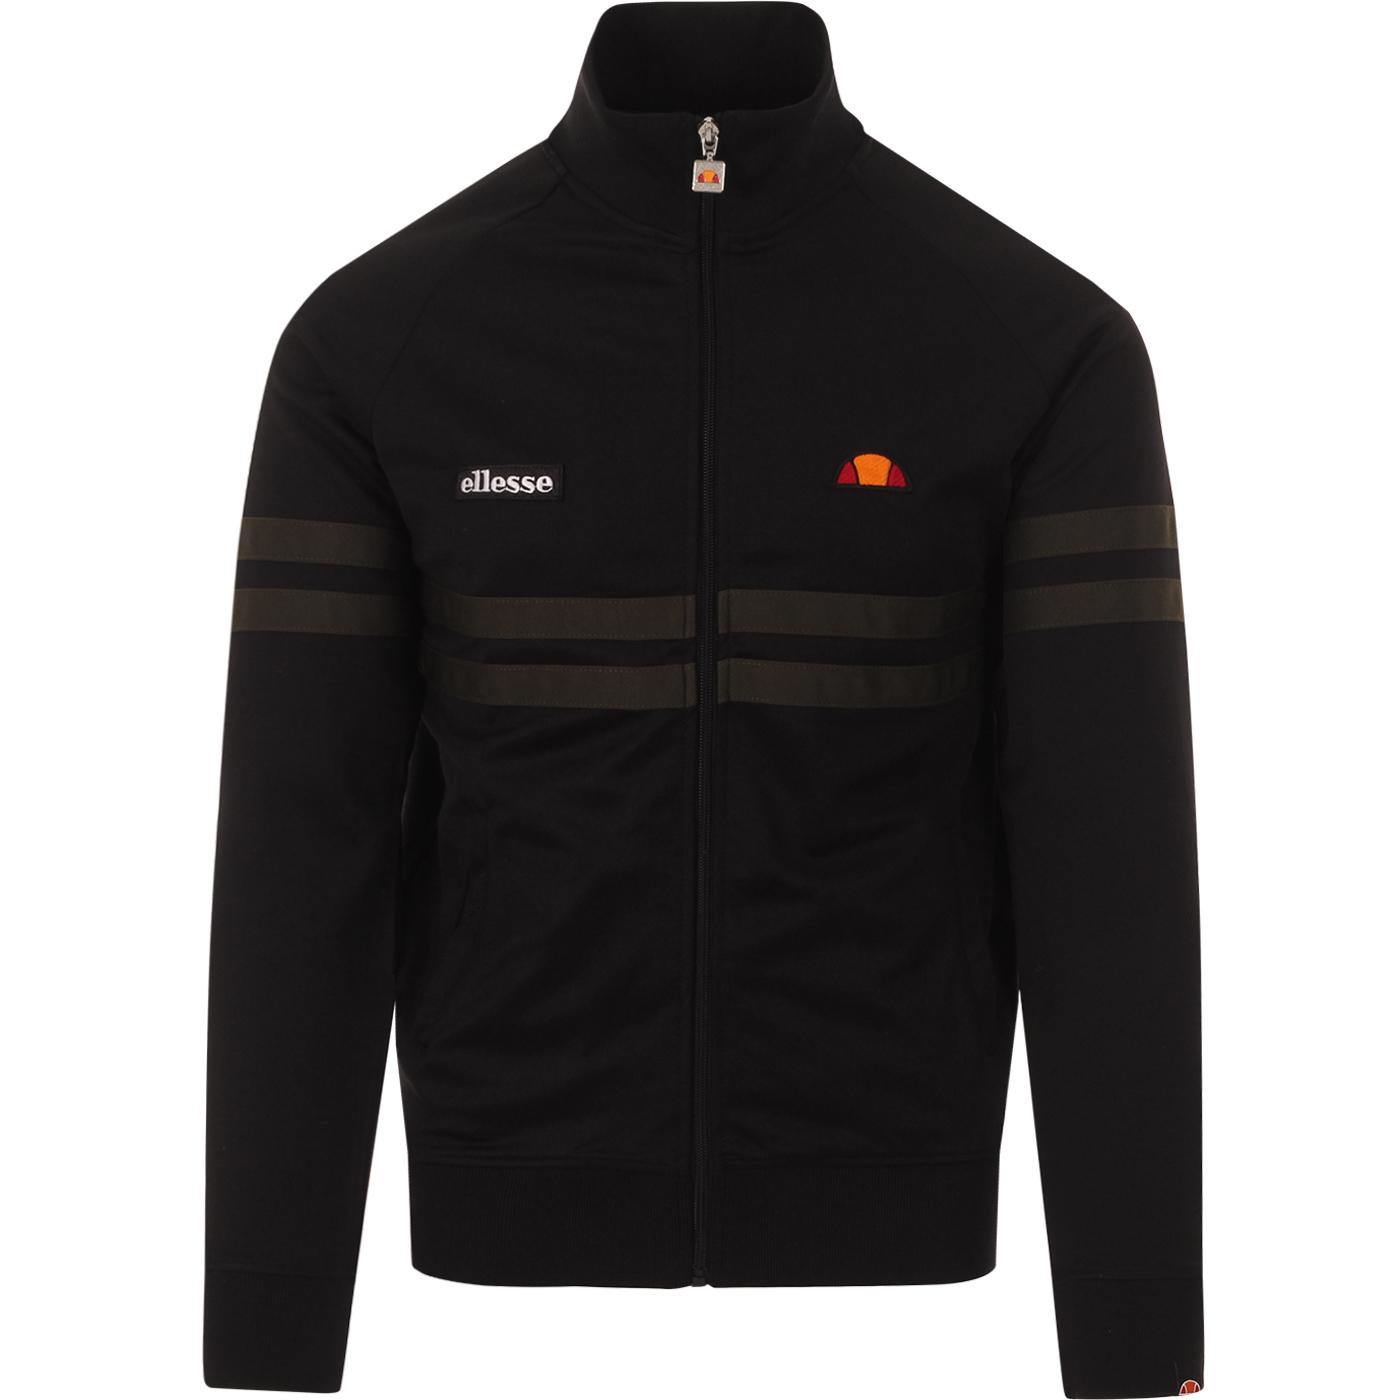 Rimini ELLESSE Retro Chest Stripe Track Top (B/G)